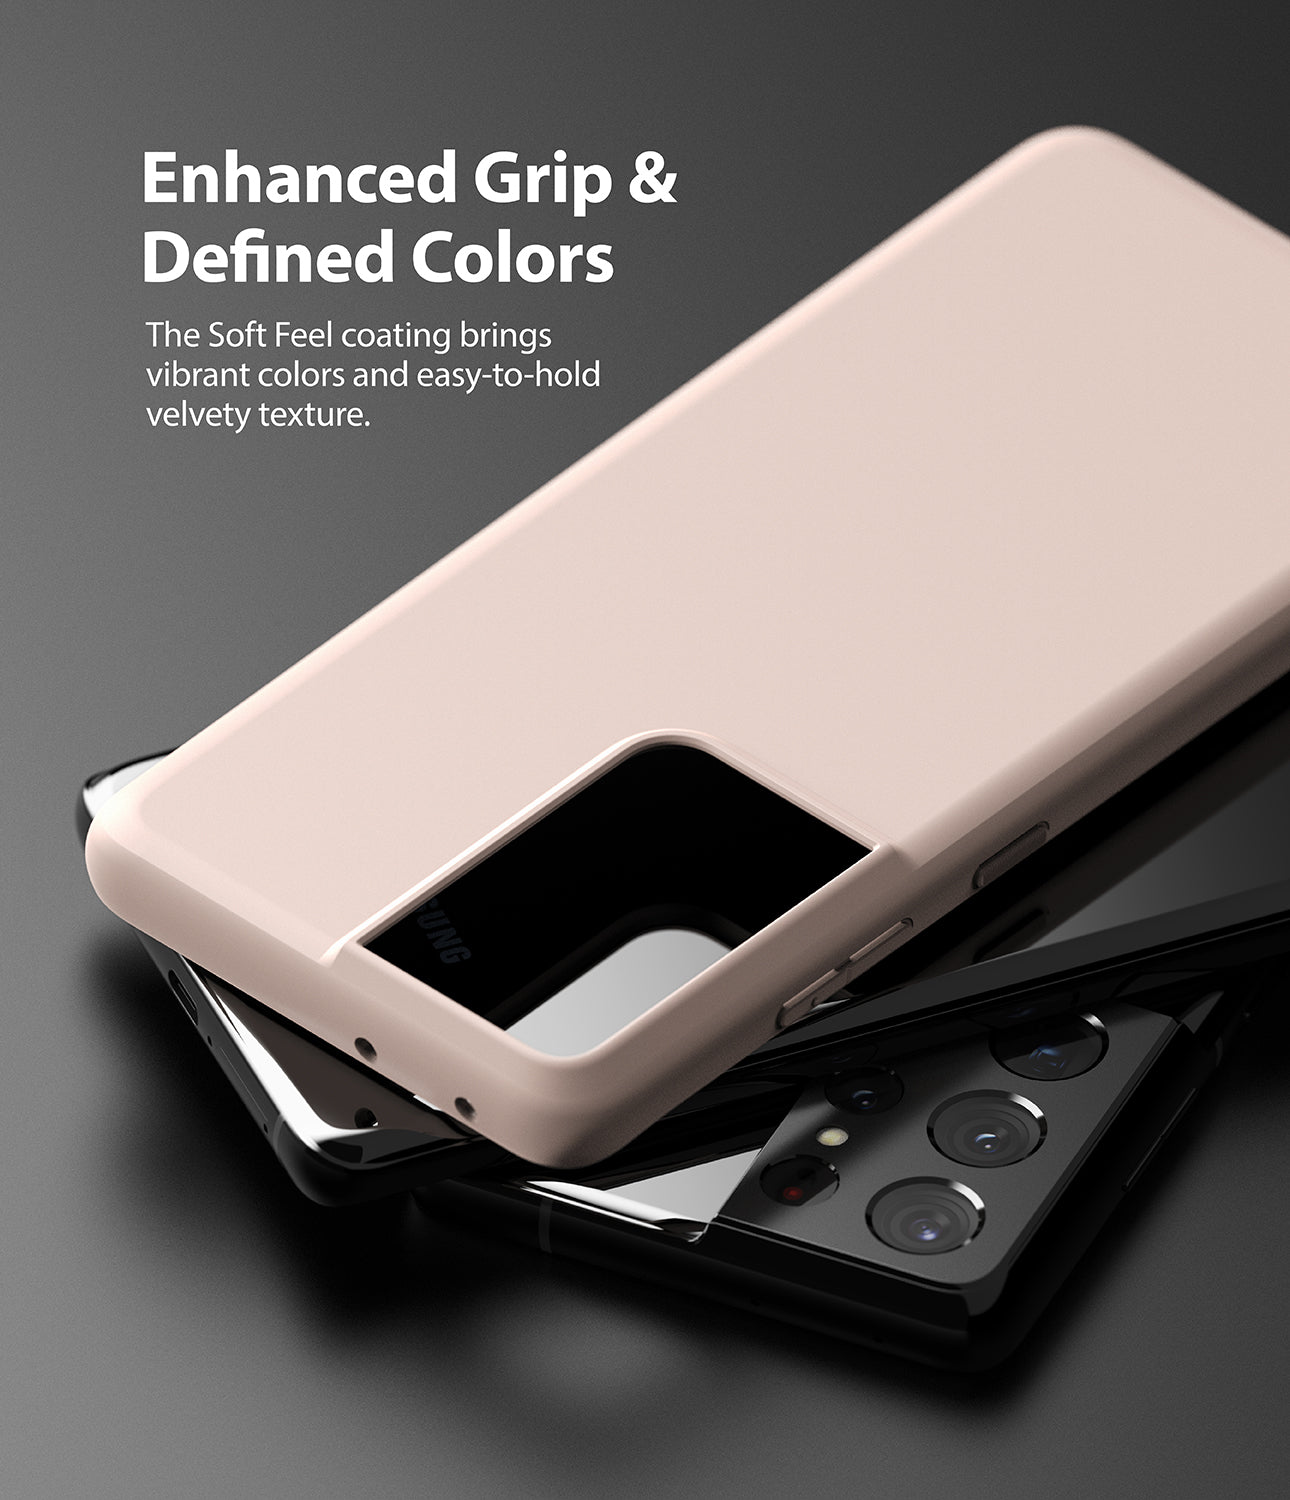 enhanced grip and defined colors - the SF coating brings vibrant colors and easy to hold velvety texture